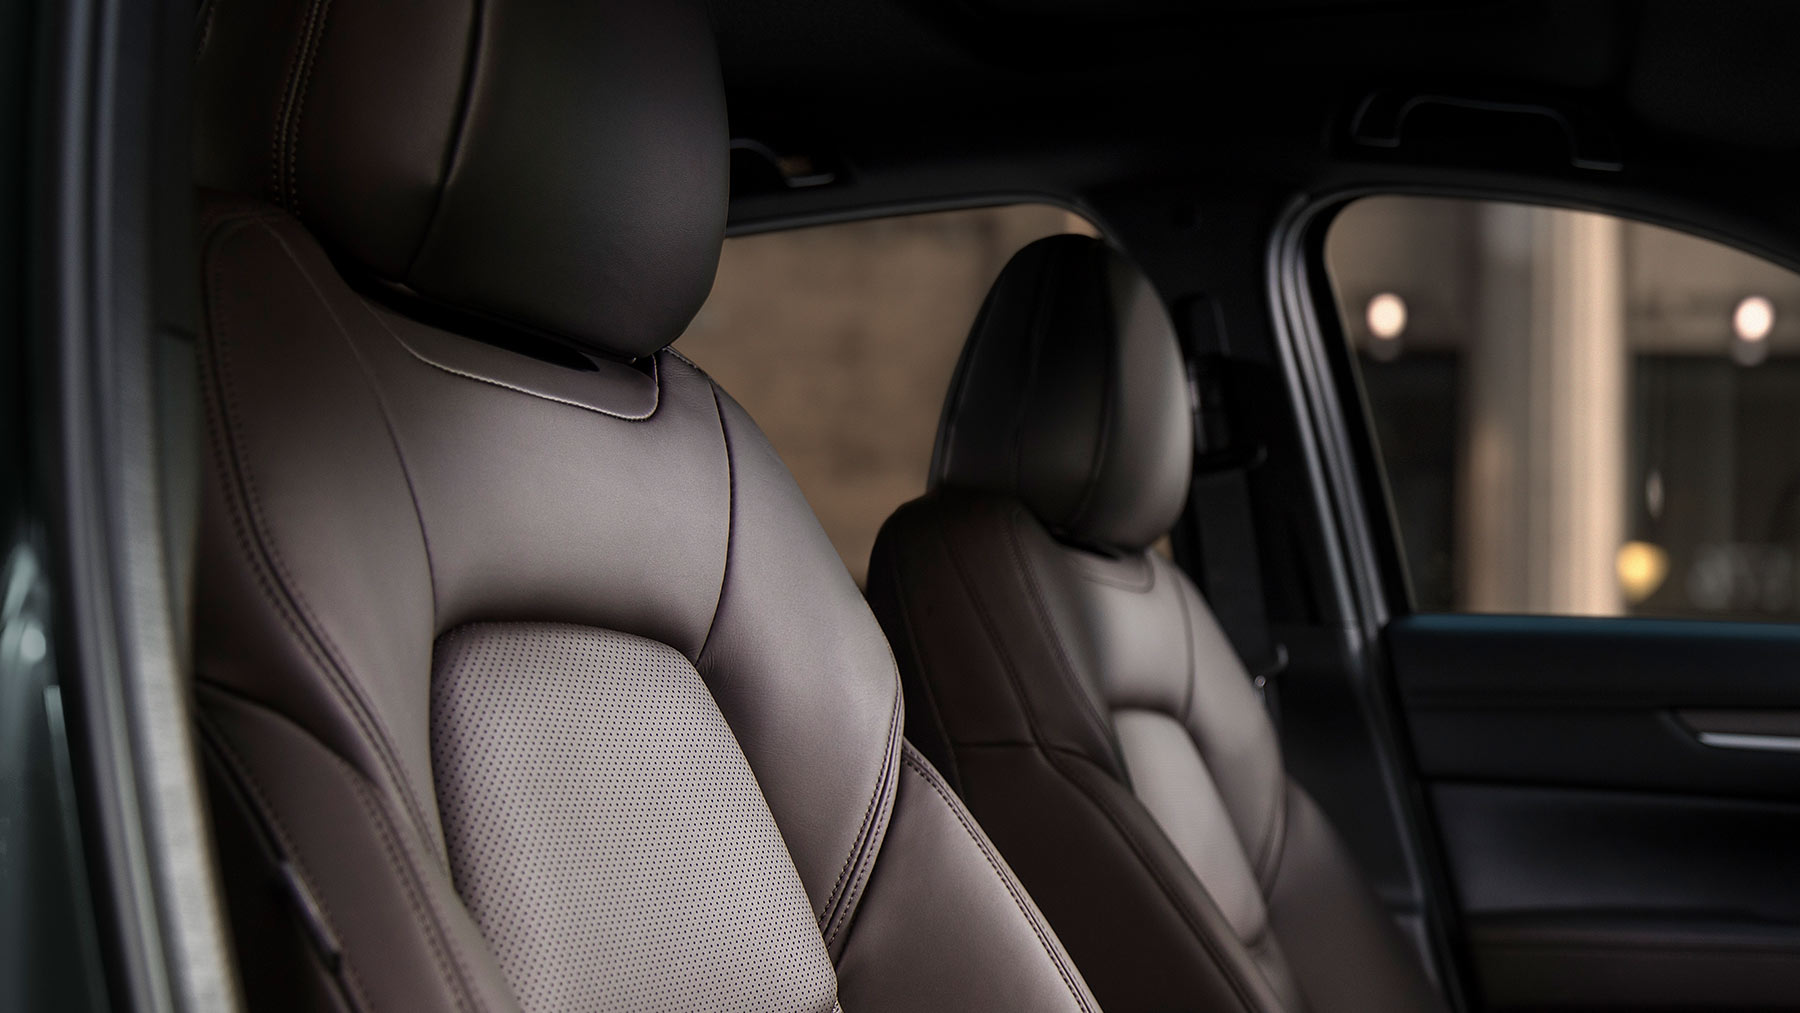 Luxurious Seating Options in the 2019 CX-5